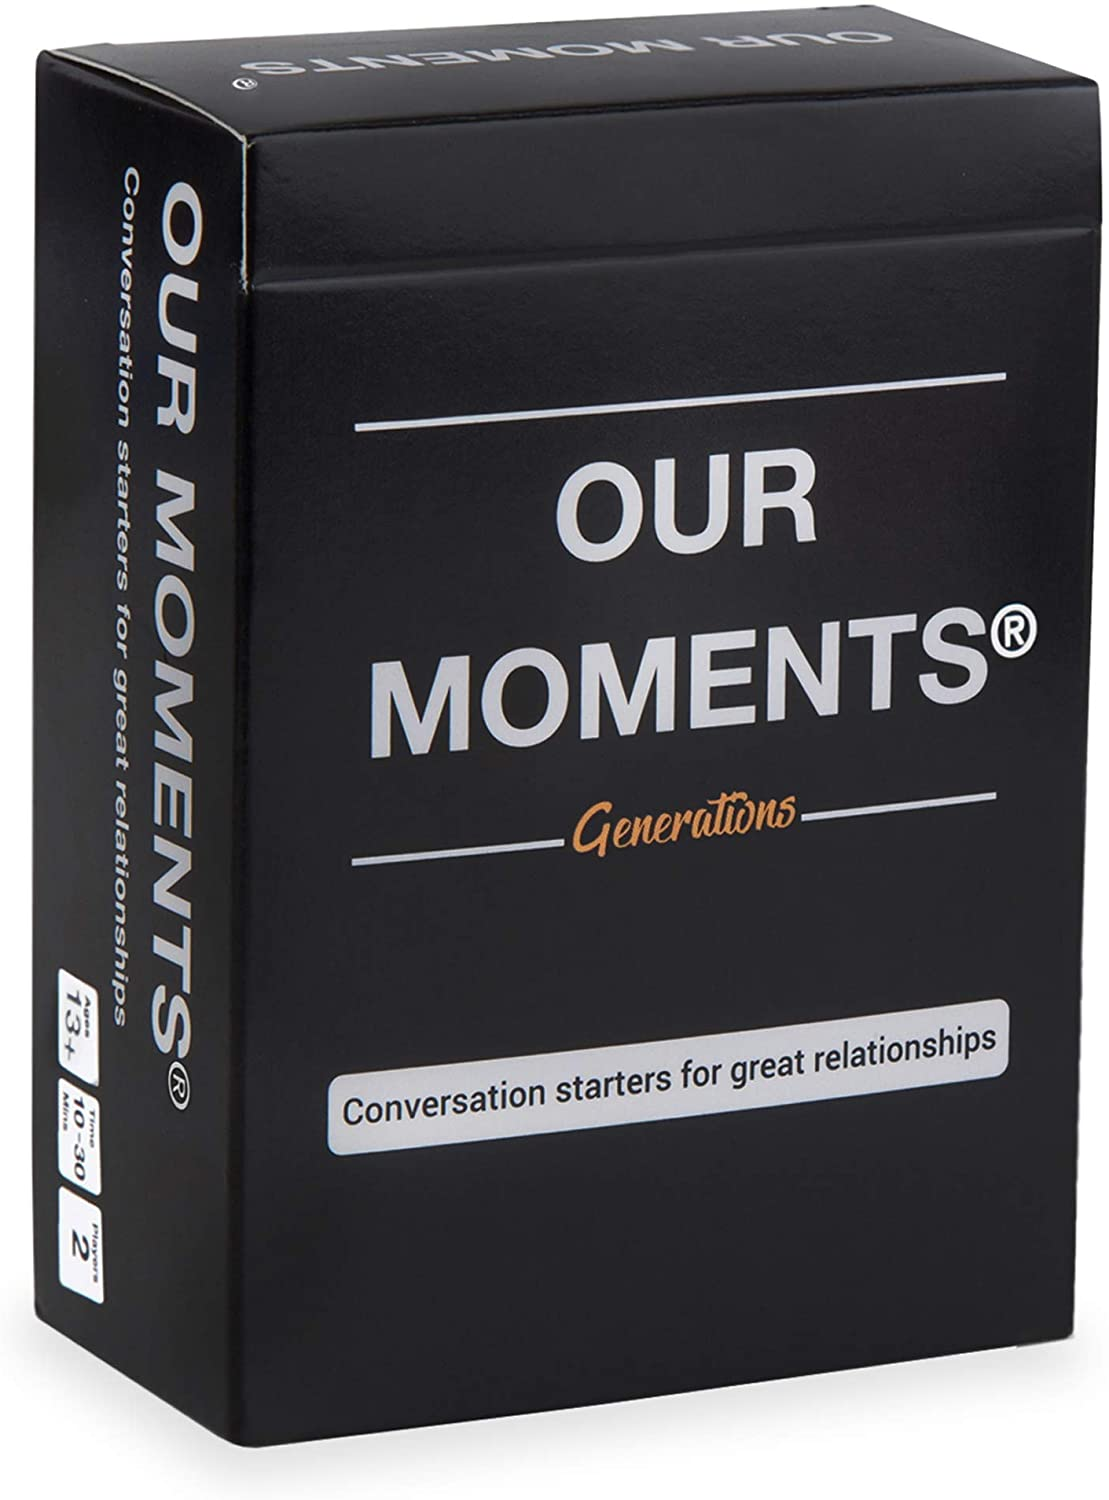 Our Moments Generations